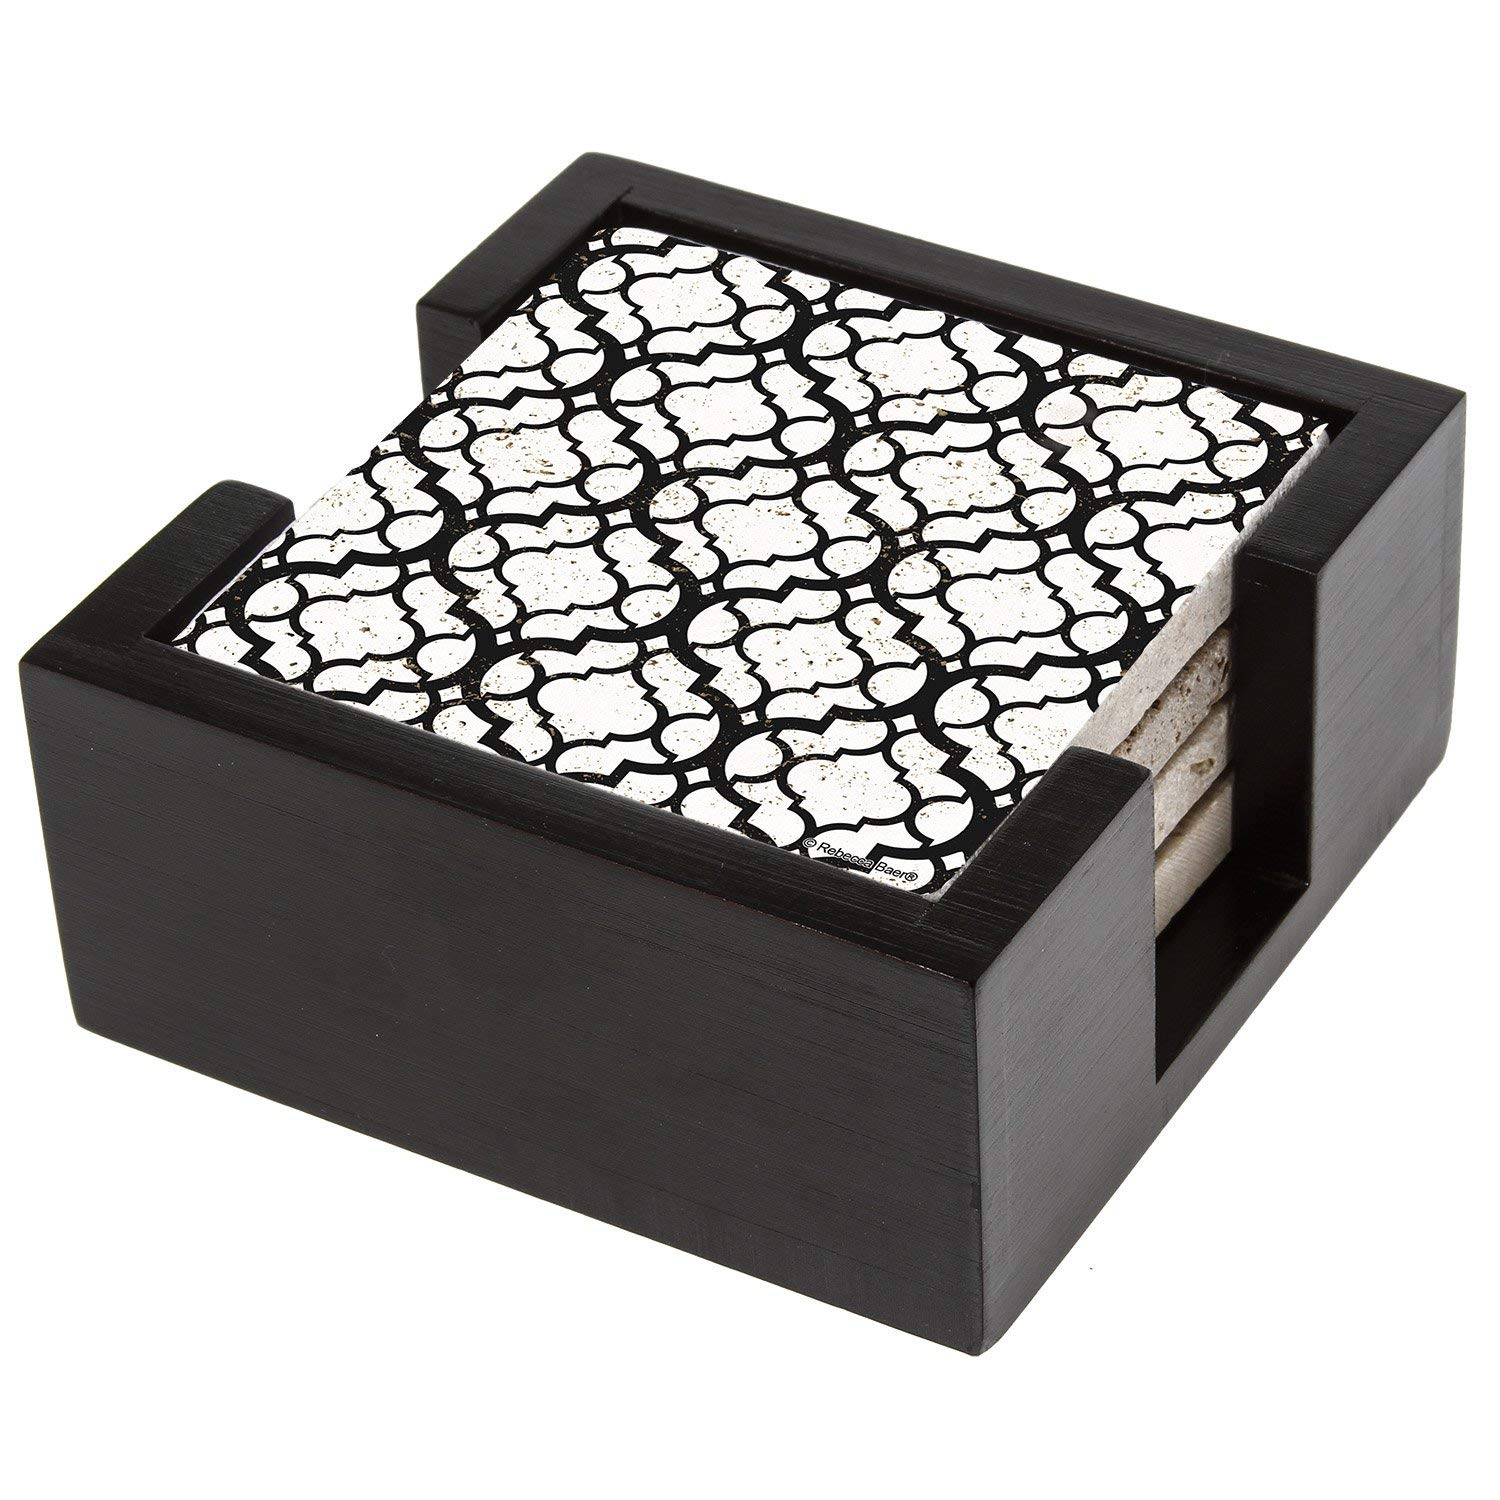 Thirstystone Travertine black Lattice Stone Drink Coaster Set with Holder Included, , Multicolored